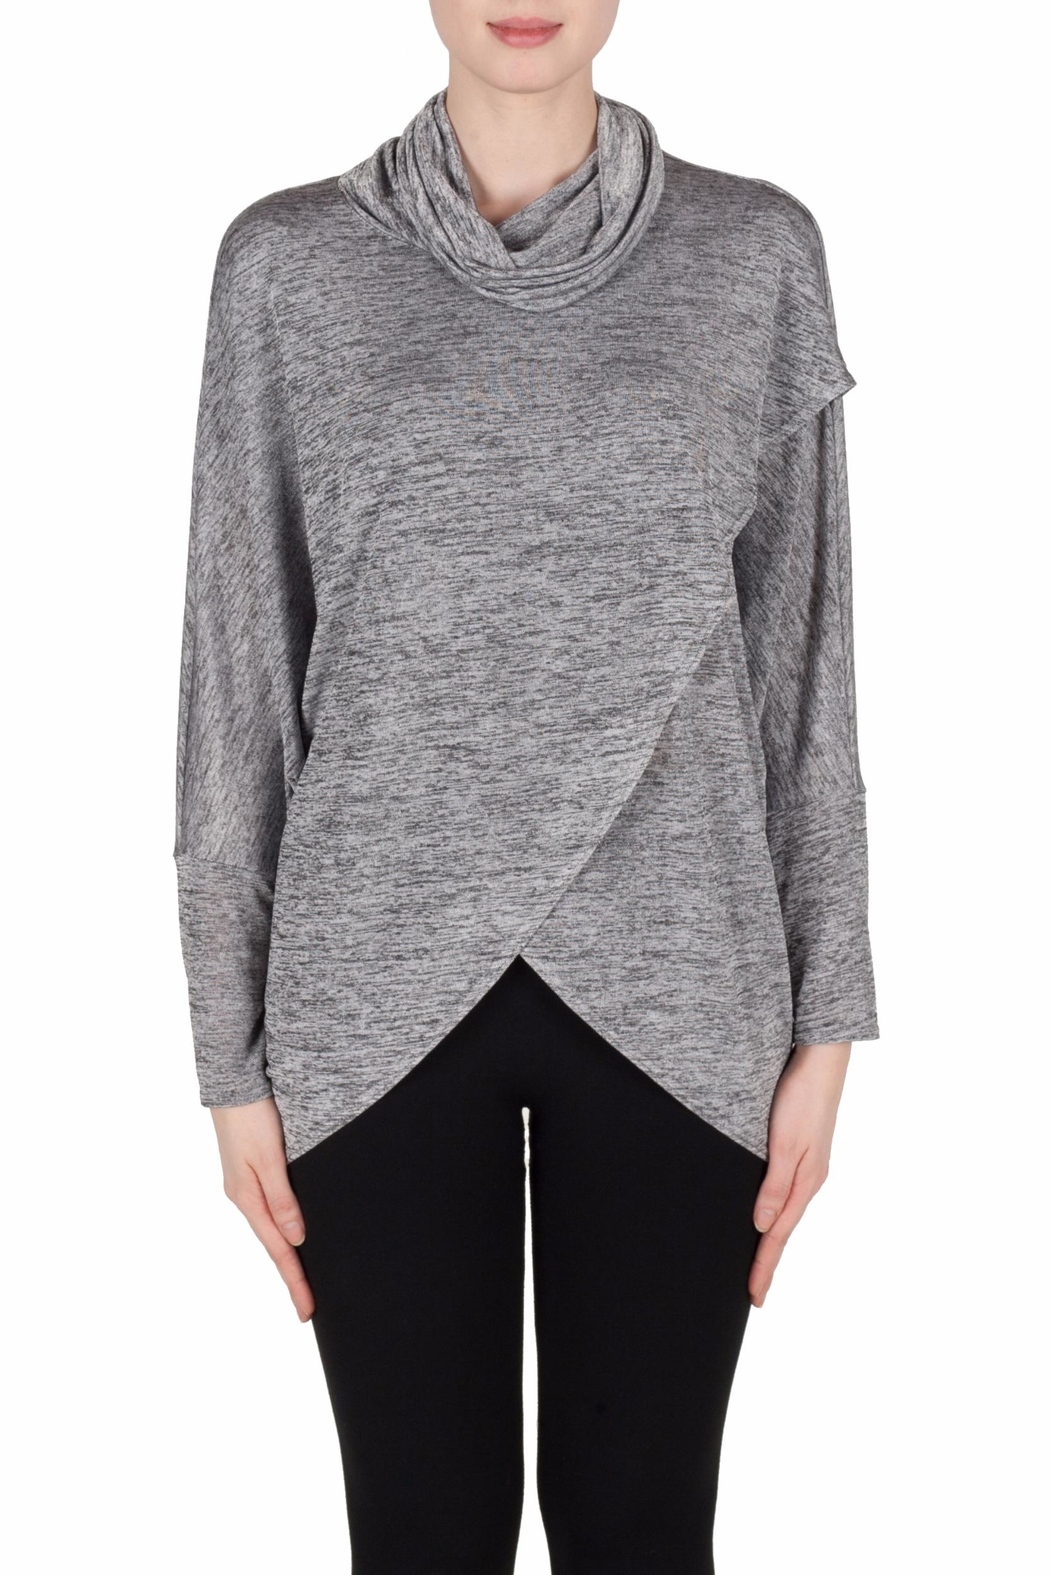 Joseph Ribkoff Raglan Cowl Tunic Top - Front Cropped Image